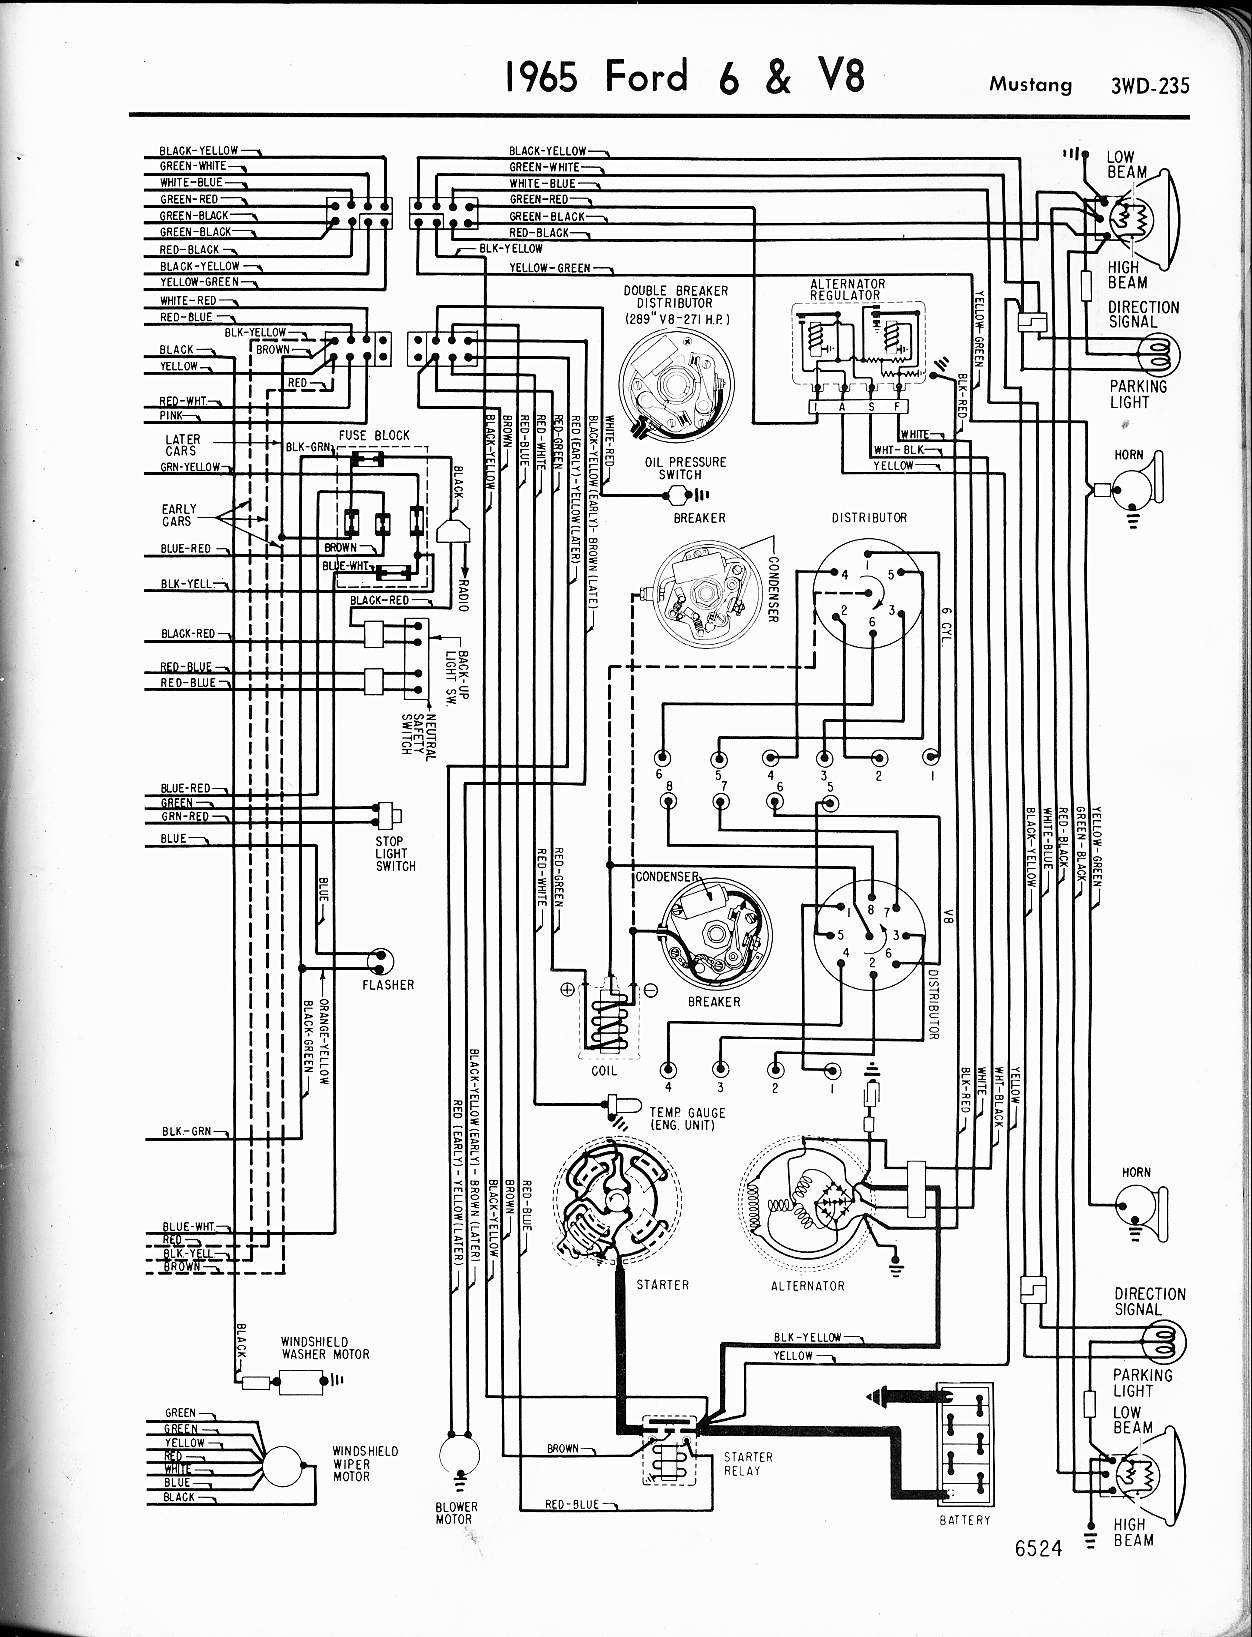 1965_mustang_wiring_2 ford diagrams old ford wiring harness at bakdesigns.co